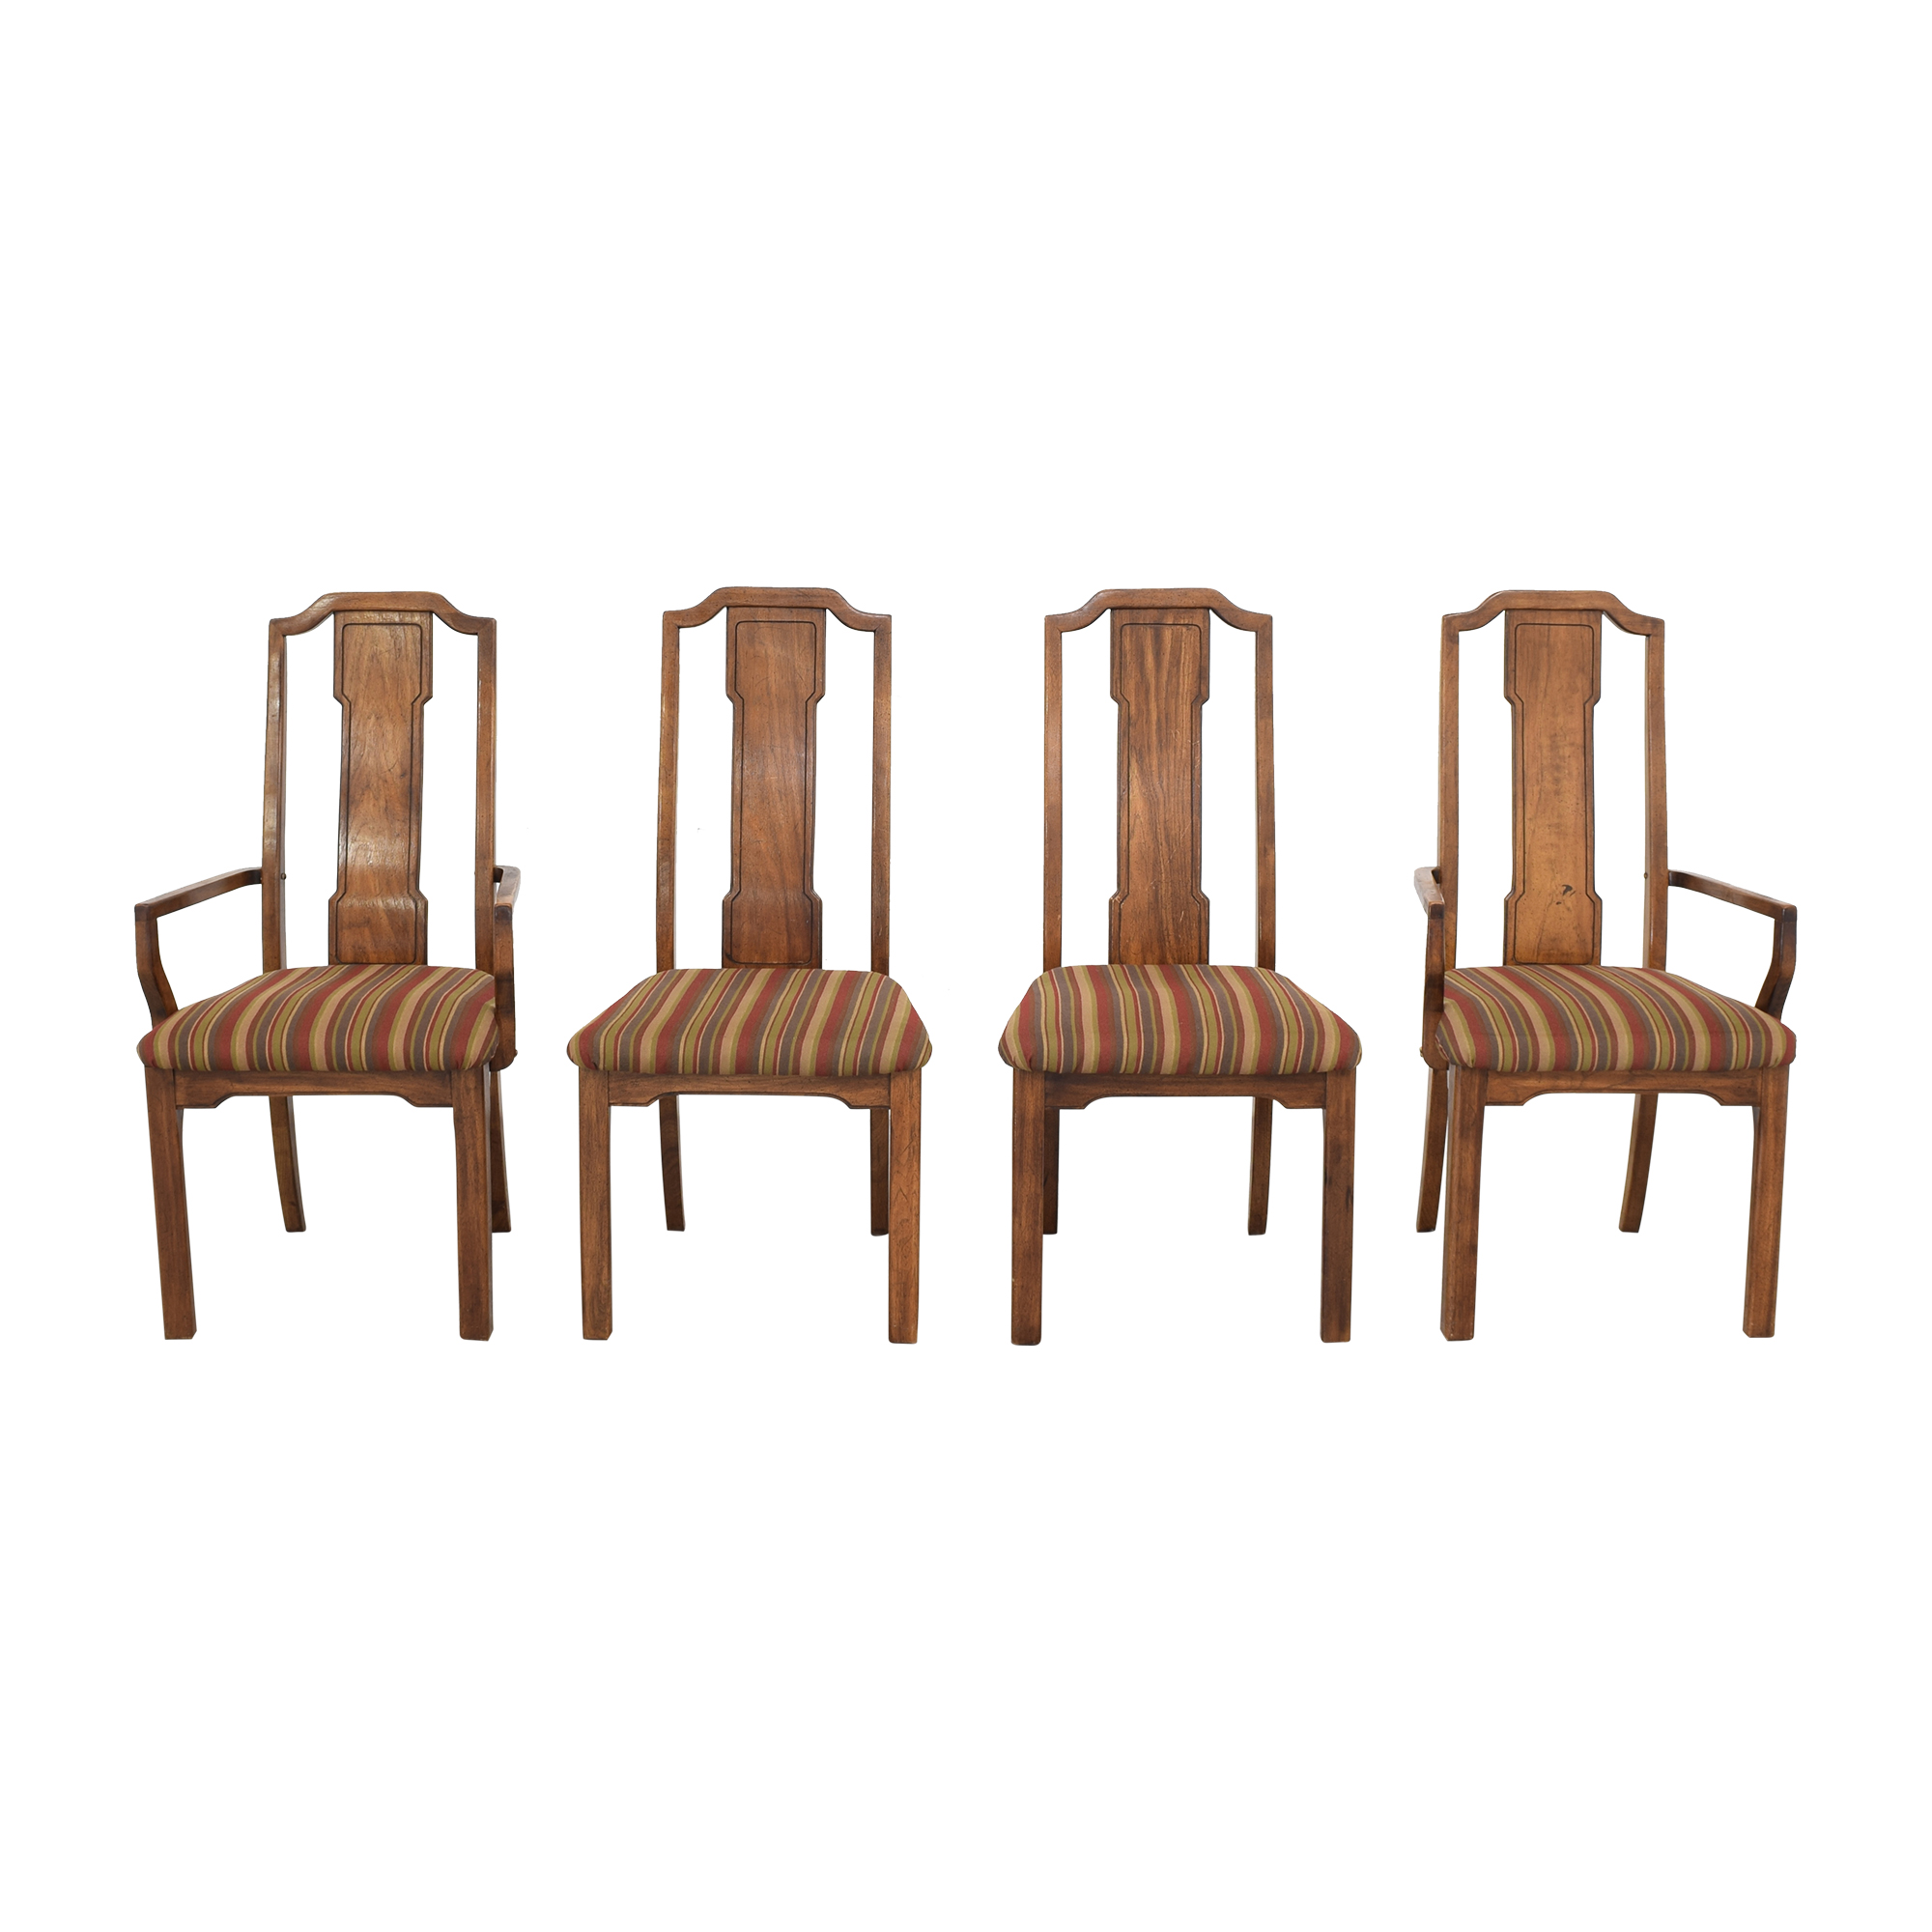 Thomasville Thomasville Dining Chairs on sale